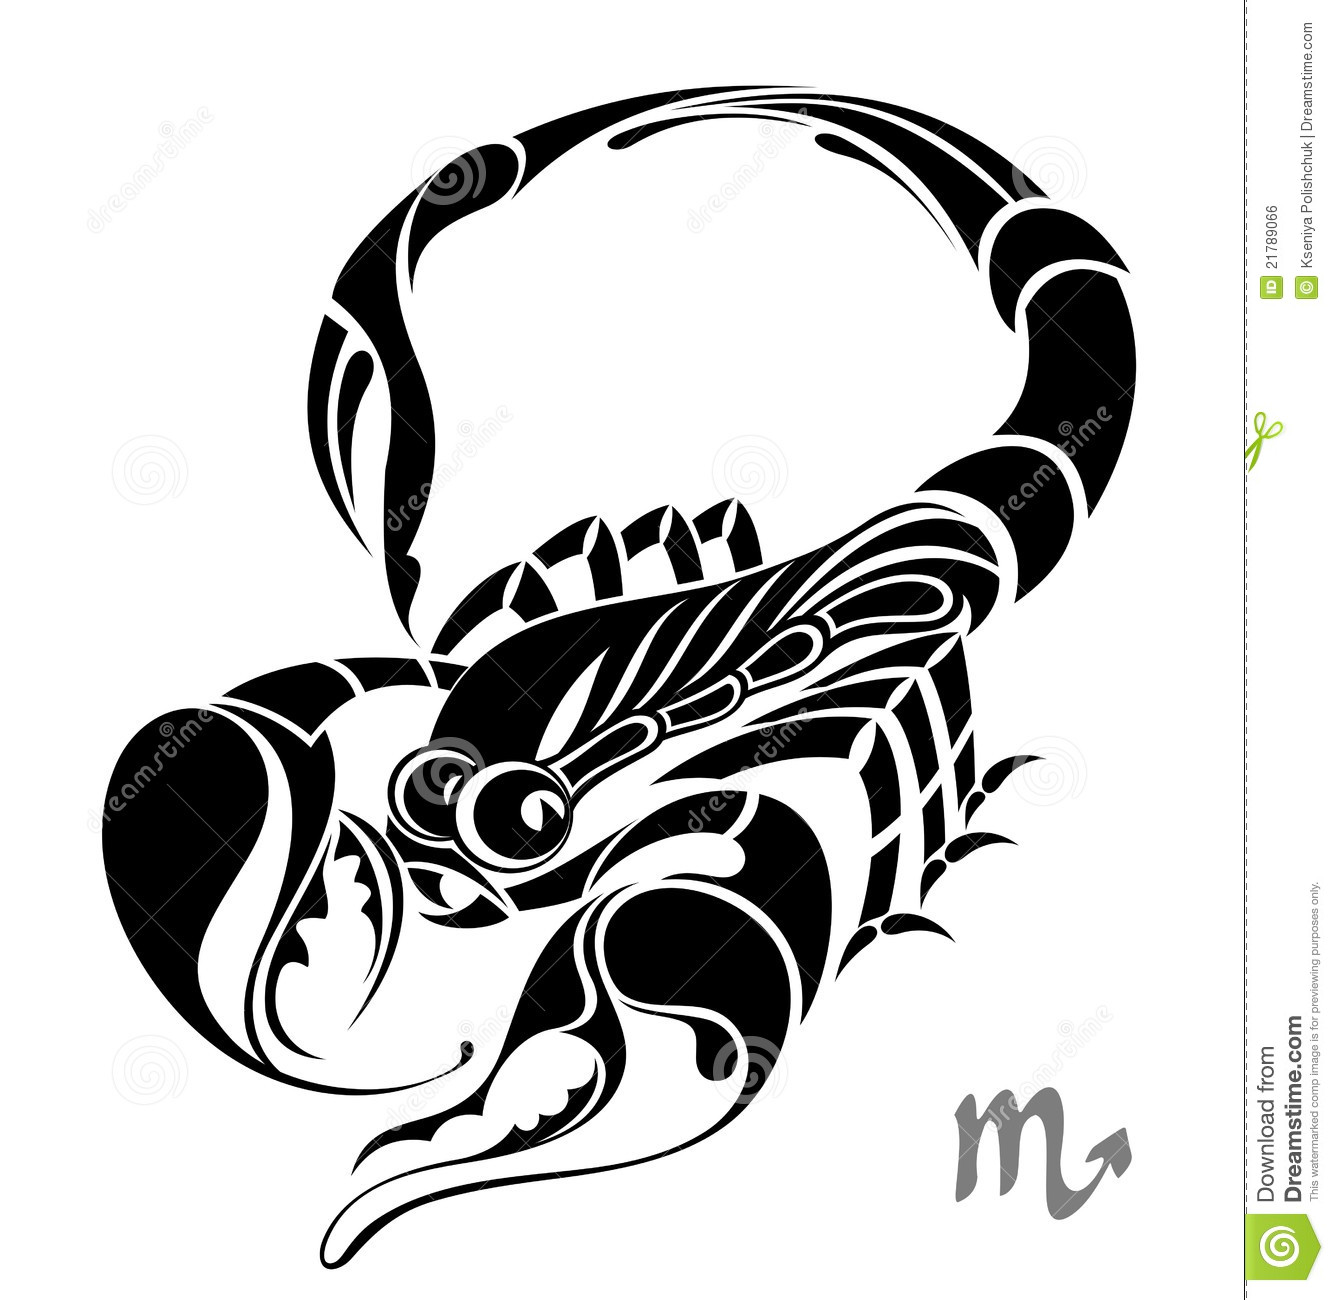 Tribal Horse Tattoos also Royalty Free Stock Image Scorpio Zodiac Vector Sign Tattoo Design Image21789066 besides Tribal Hawk Tattoo likewise Tribales Brazo likewise Watch. on simple scorpion drawing